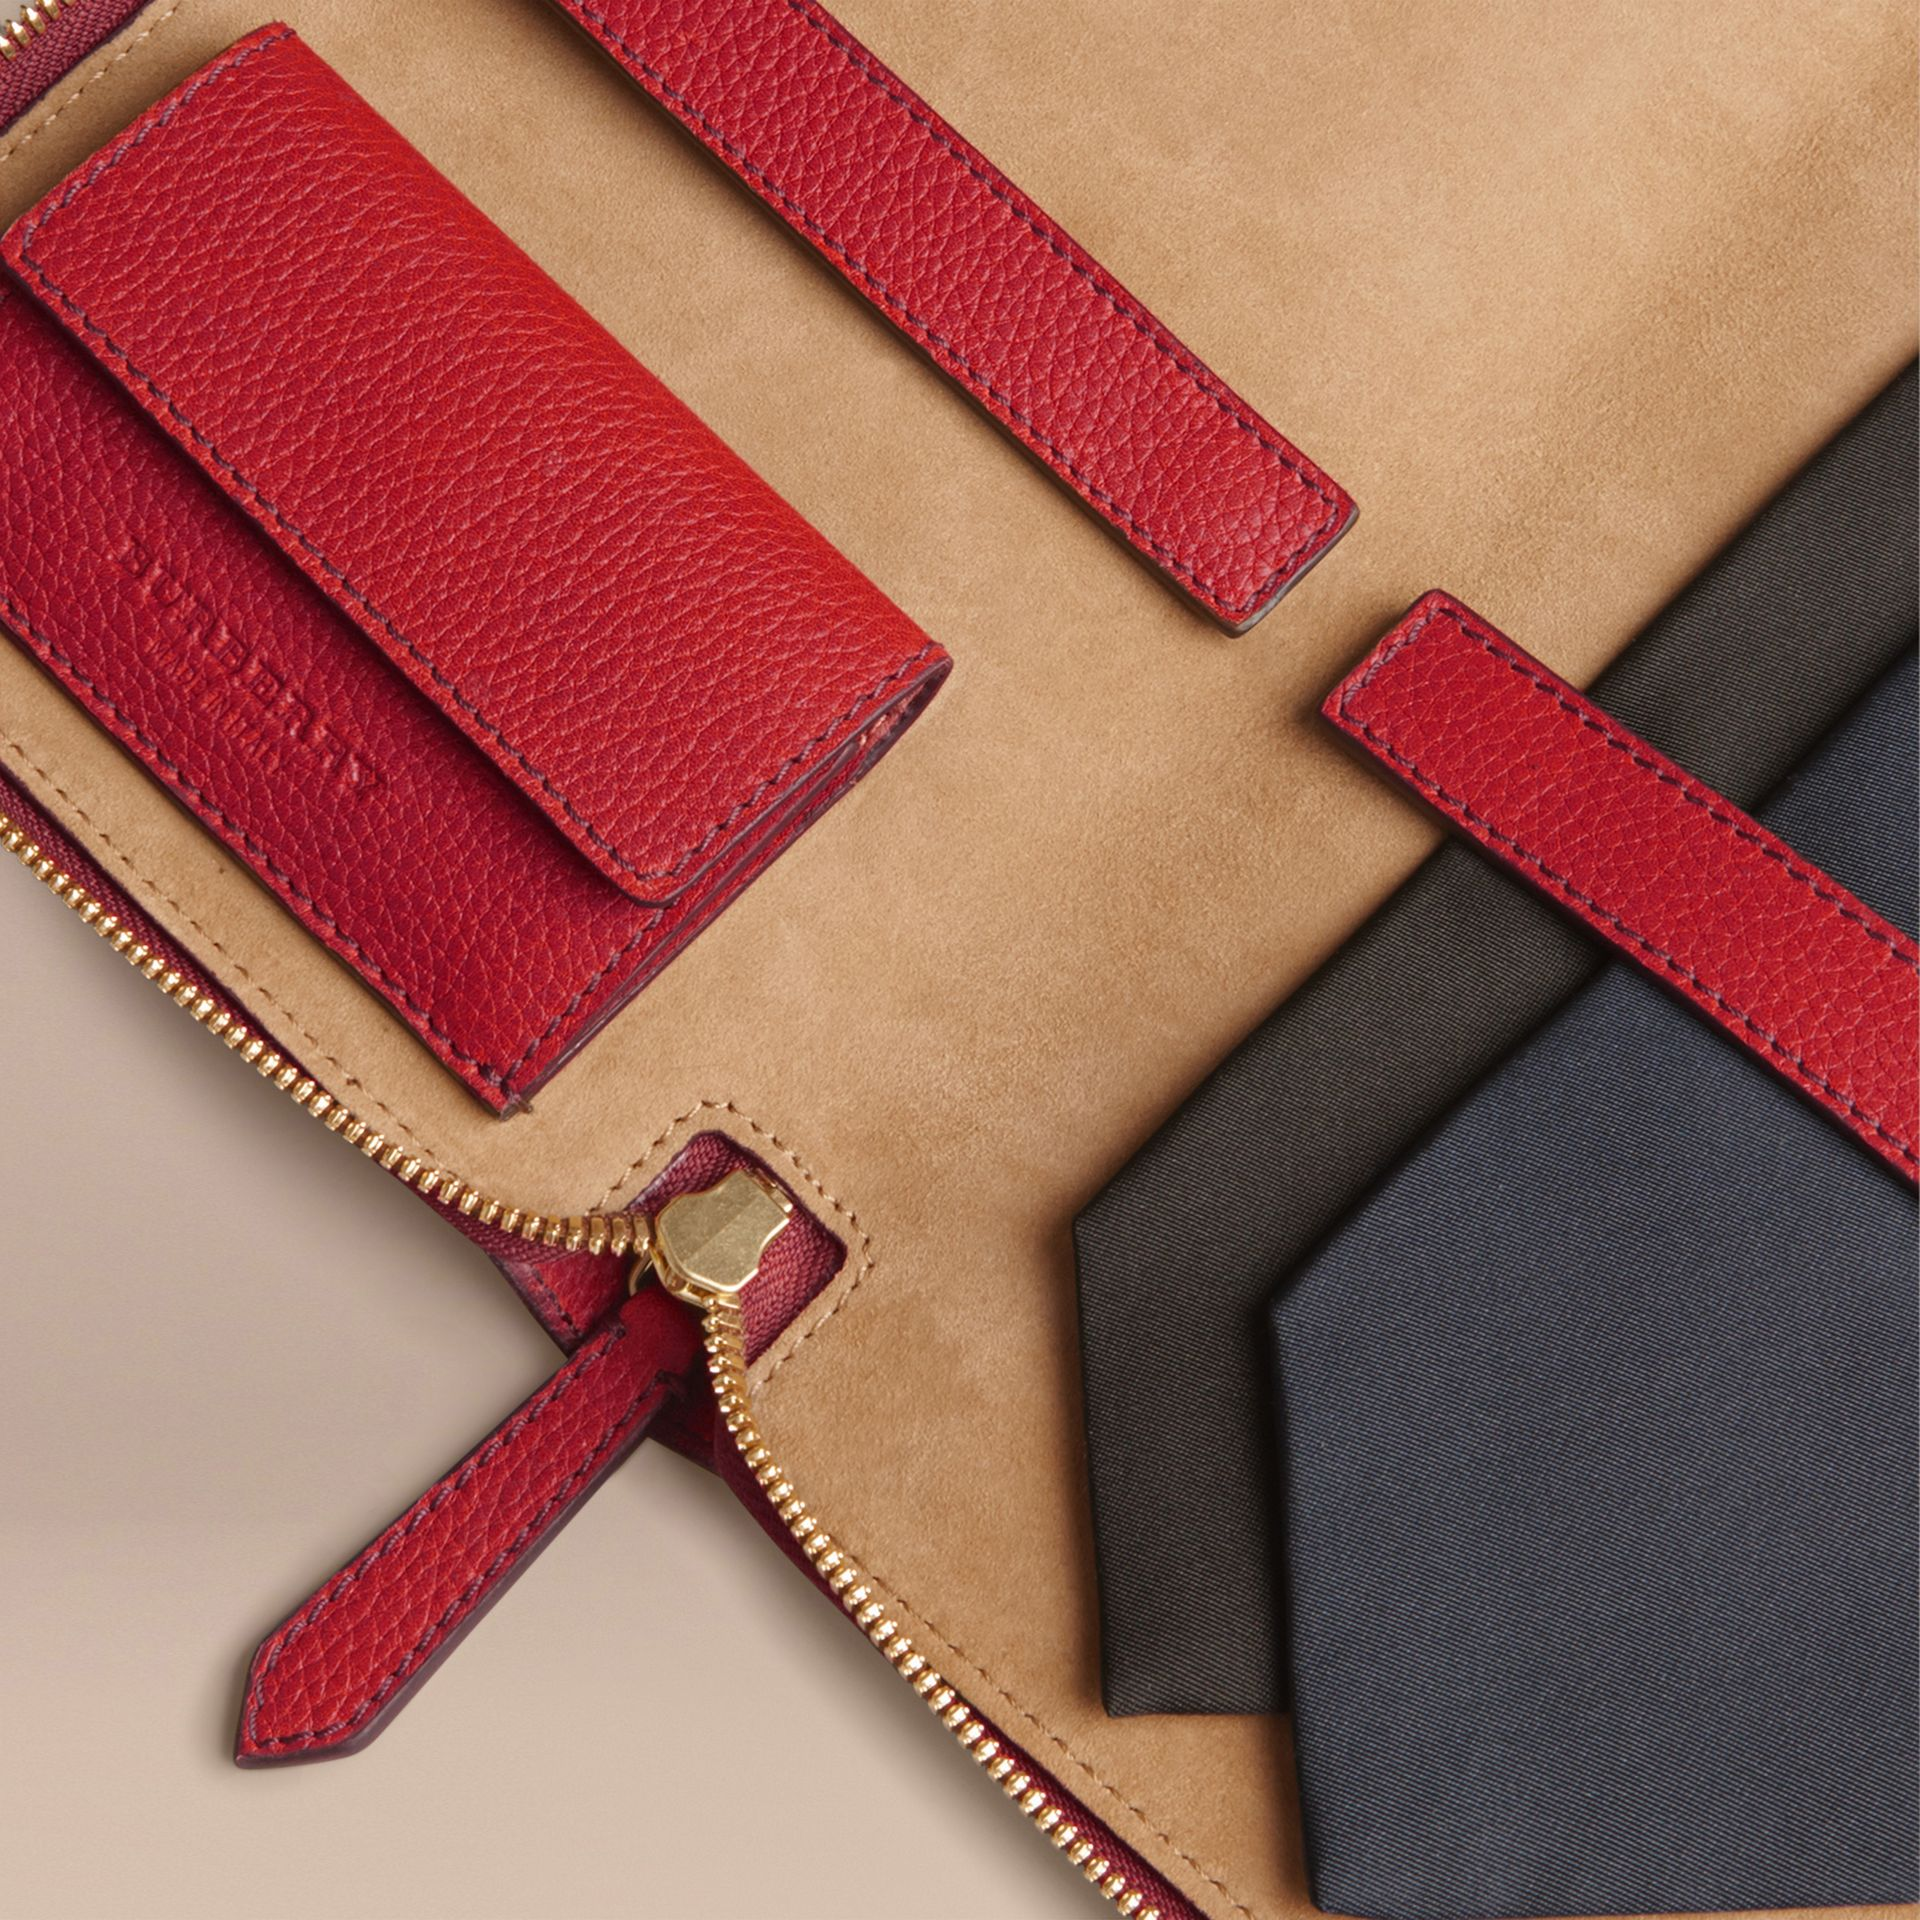 Grainy Leather Tie Case in Parade Red - Men | Burberry Australia - gallery image 3